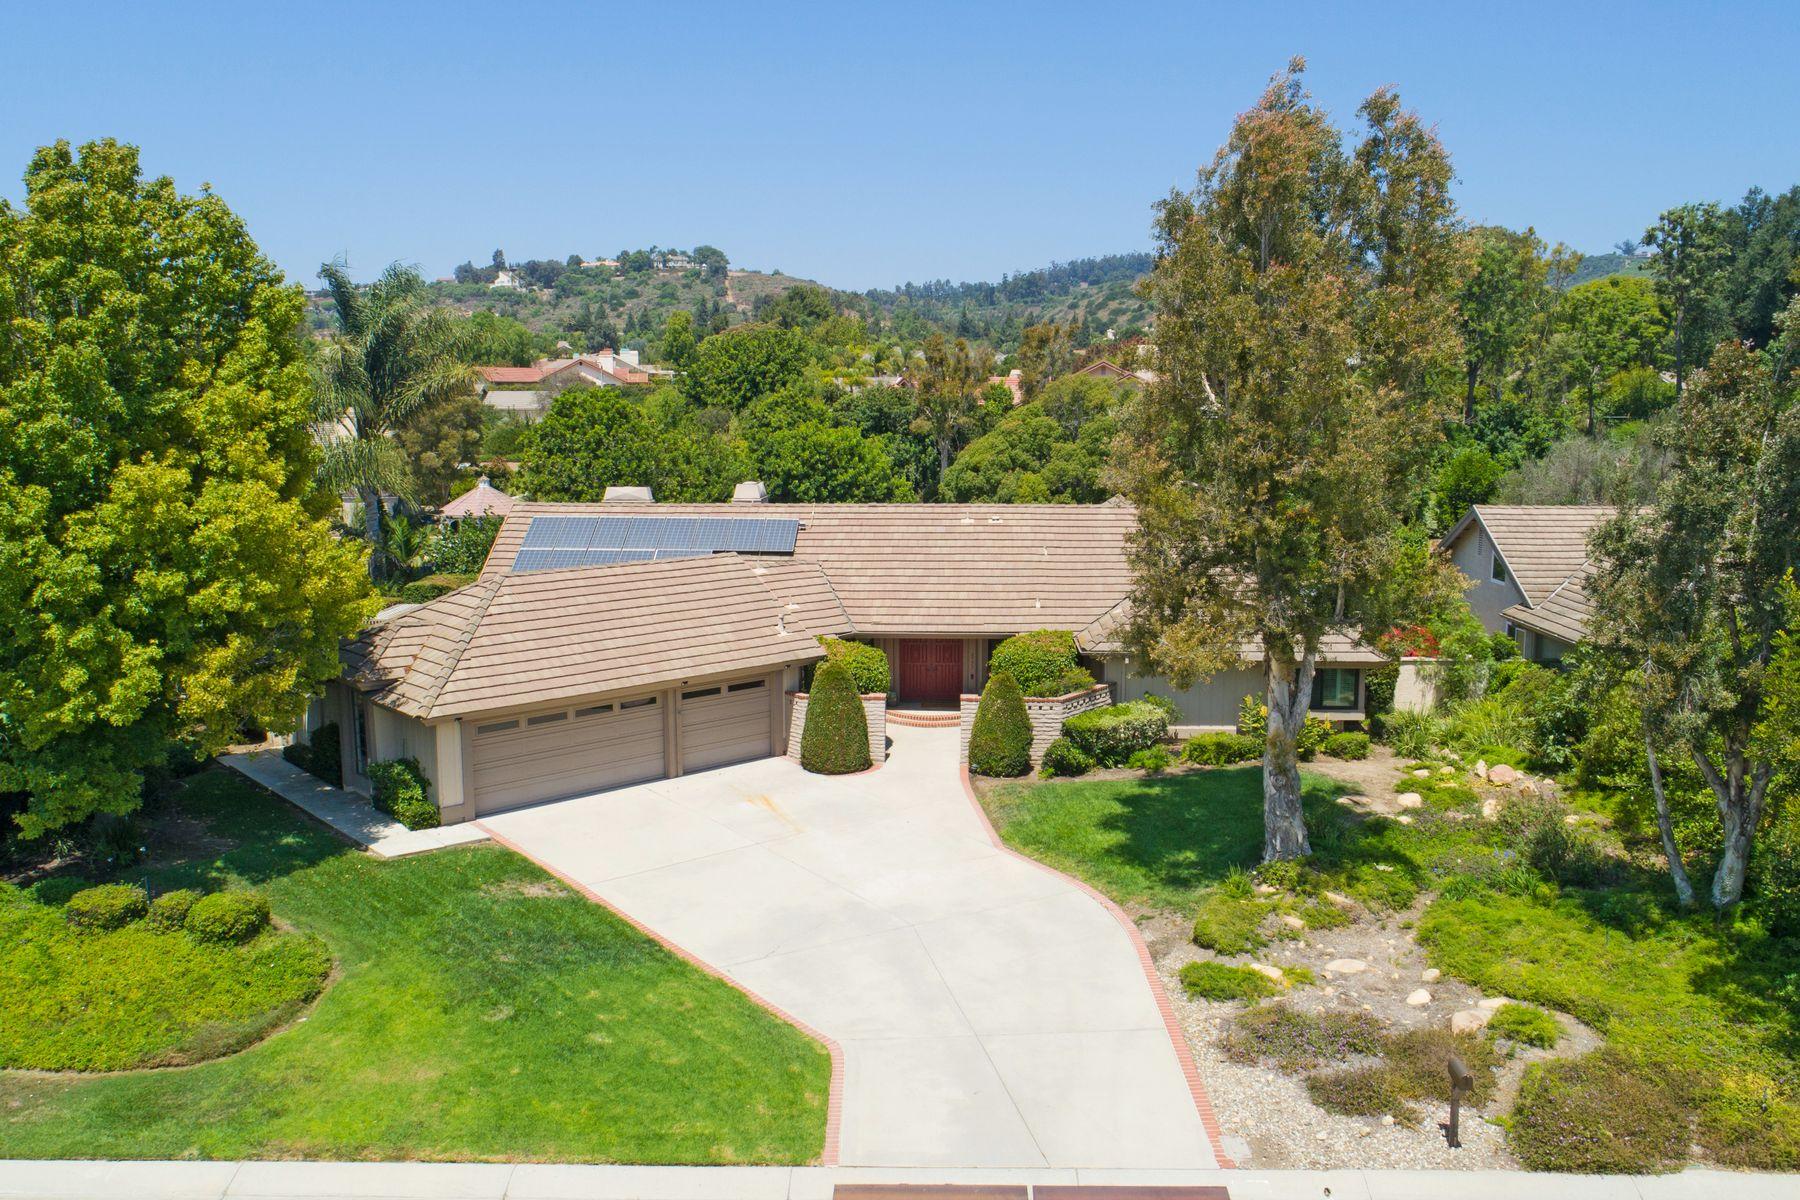 Single Family Homes for Sale at One-Story Home in Camarillo 6551 San Onofre Drive Camarillo, California 93012 United States